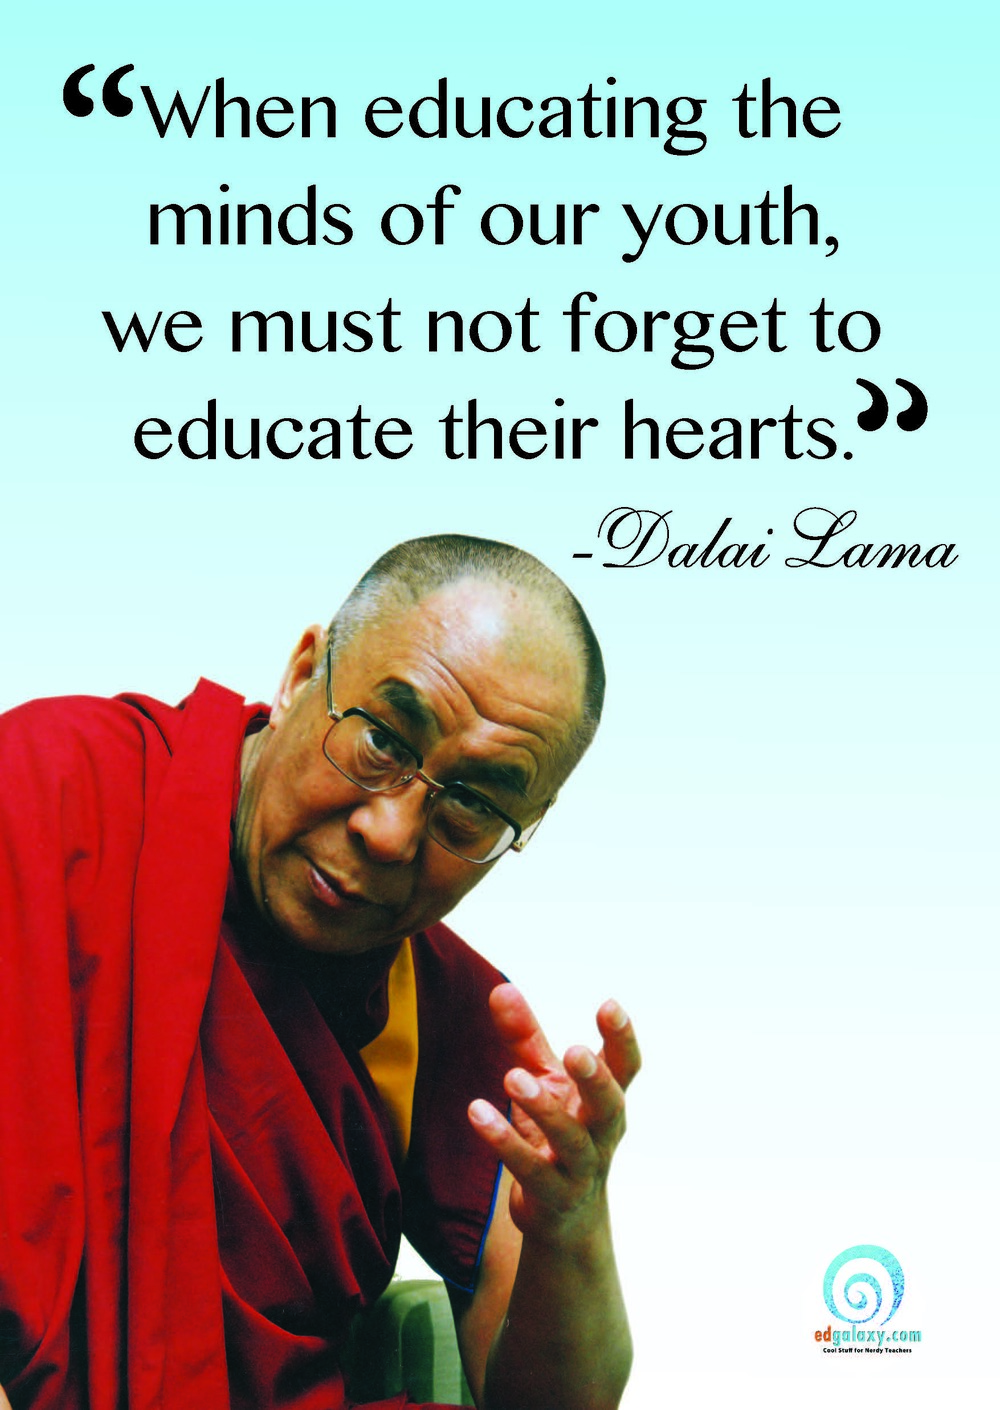 Educational Quotes Education Quotes  Famous Quotes For Teachers And Students .